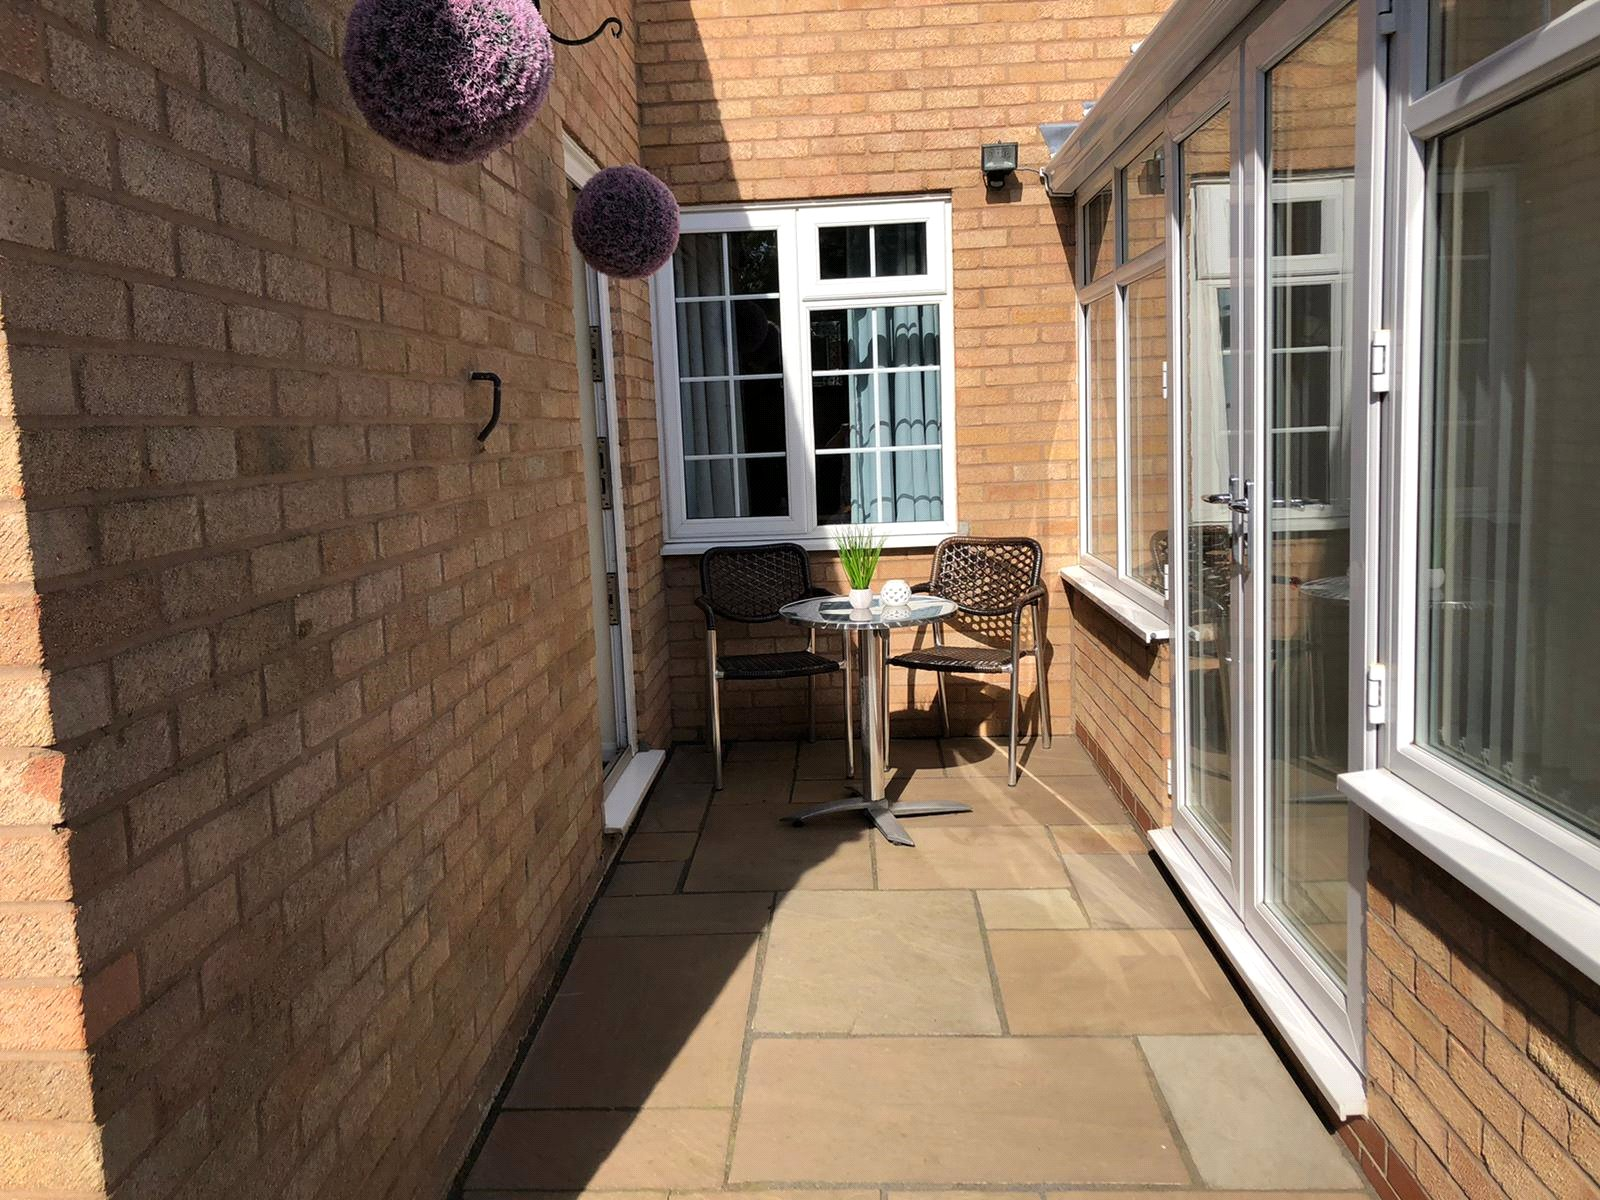 3 bed house for sale in Axis Way, Eaton Socon  - Property Image 13